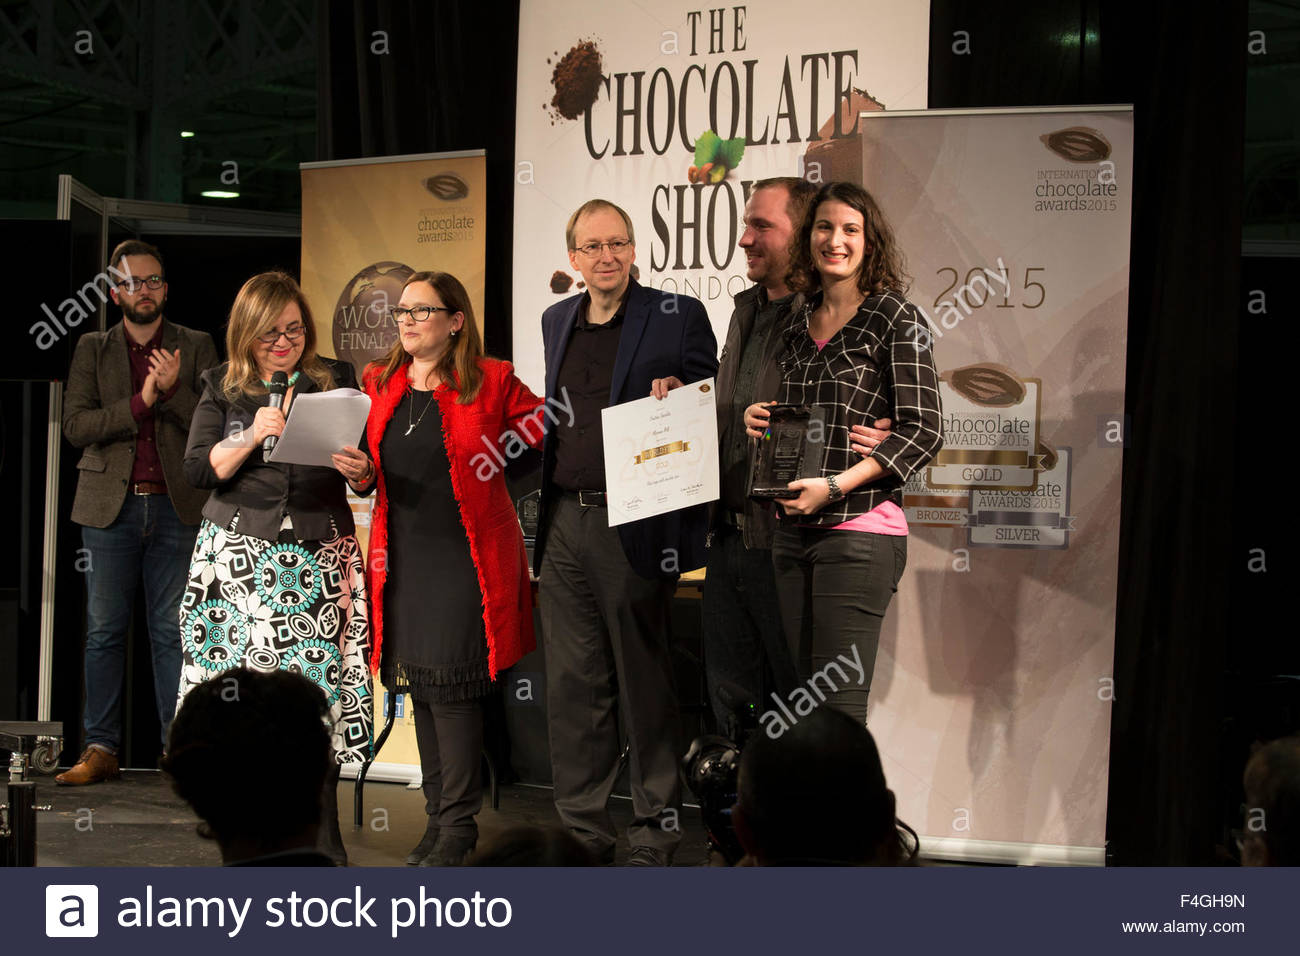 Olympia, London, UK. 18th October, 2015. The Chocolate Show ...